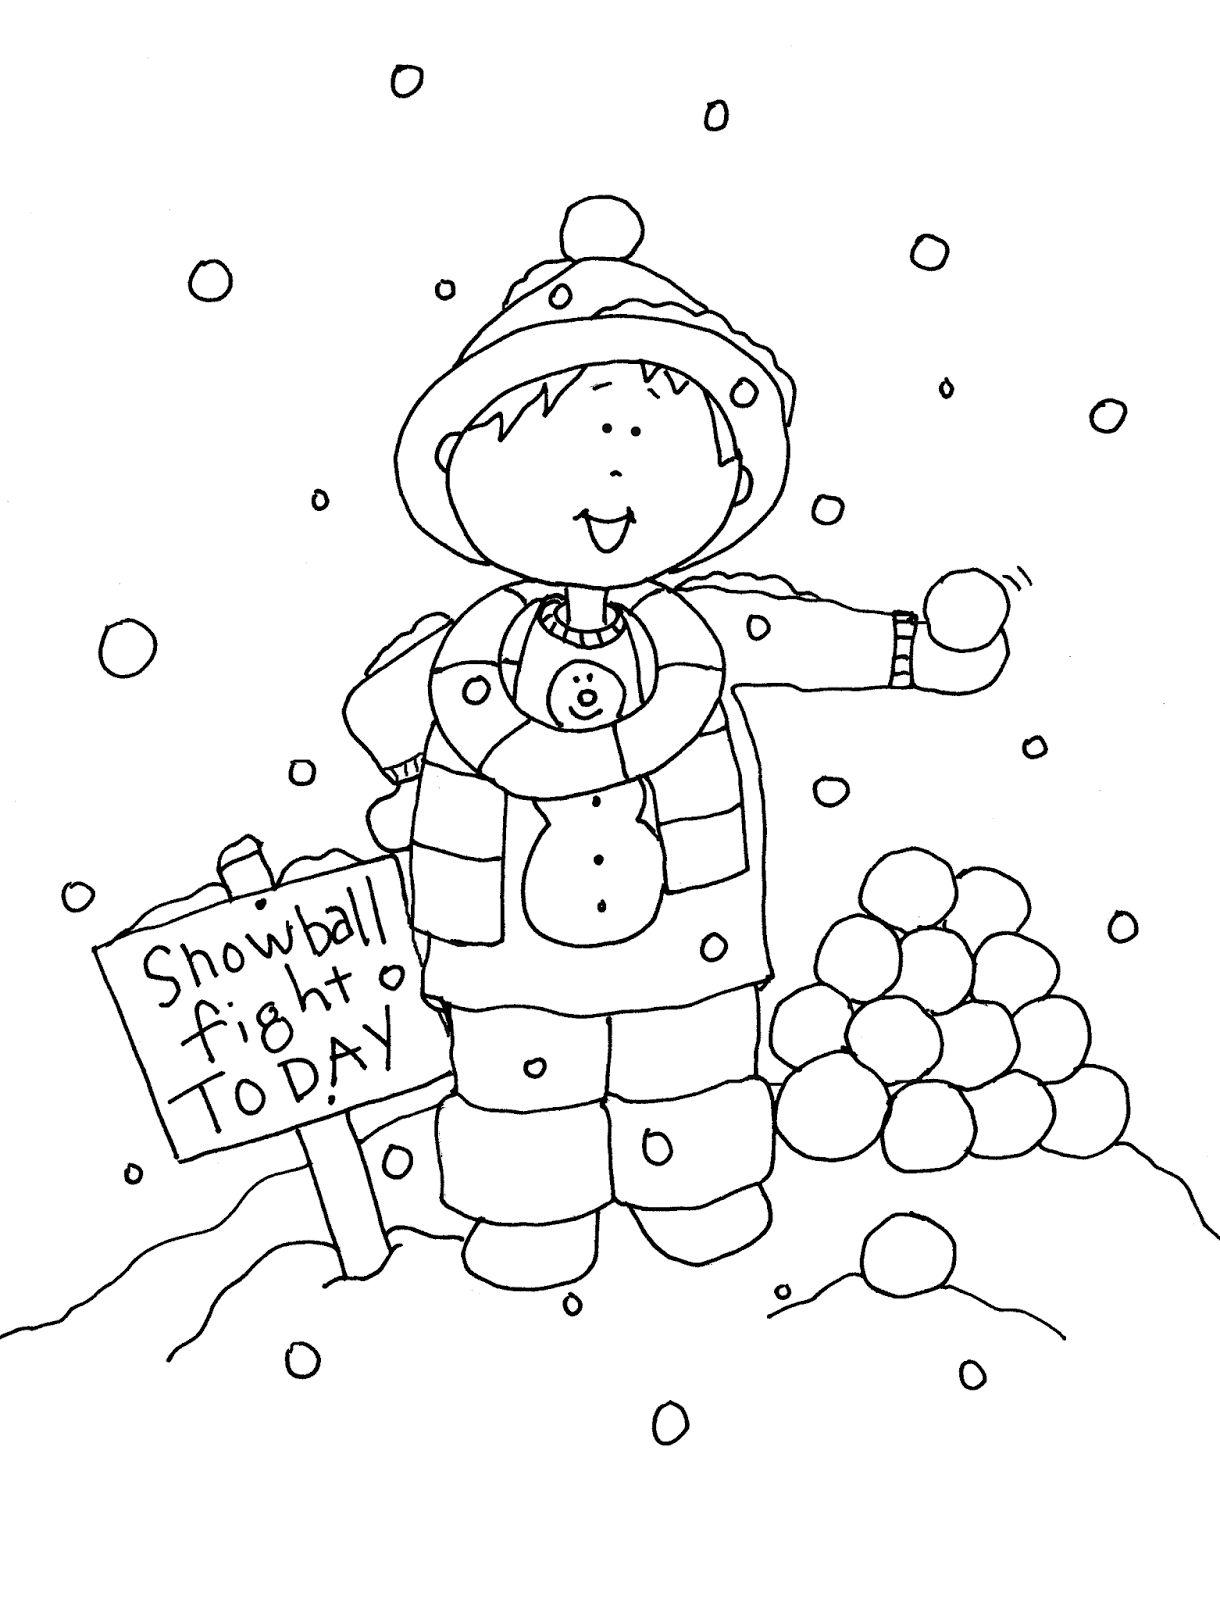 Free Dearie Dolls Digi Stamps Snowball Fight Today